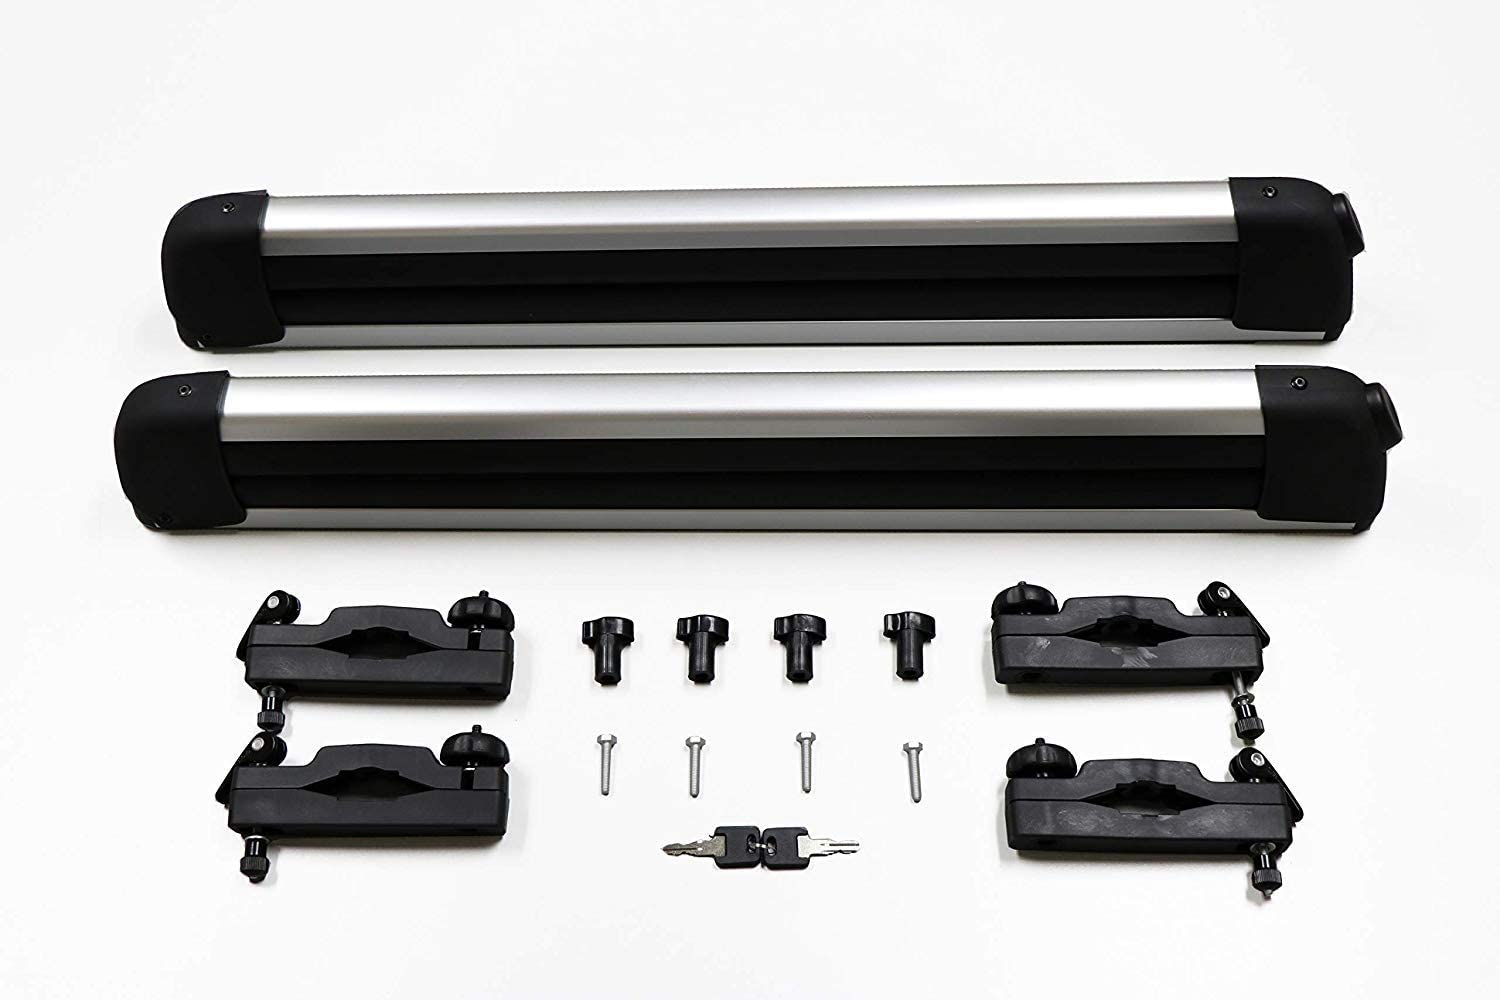 BRIGHTLINES Universal Ski Snowboard Racks Carriers 2pcs Mount on Vehicle top Cross Bars Up to 6 Skis or 4 Snowboards